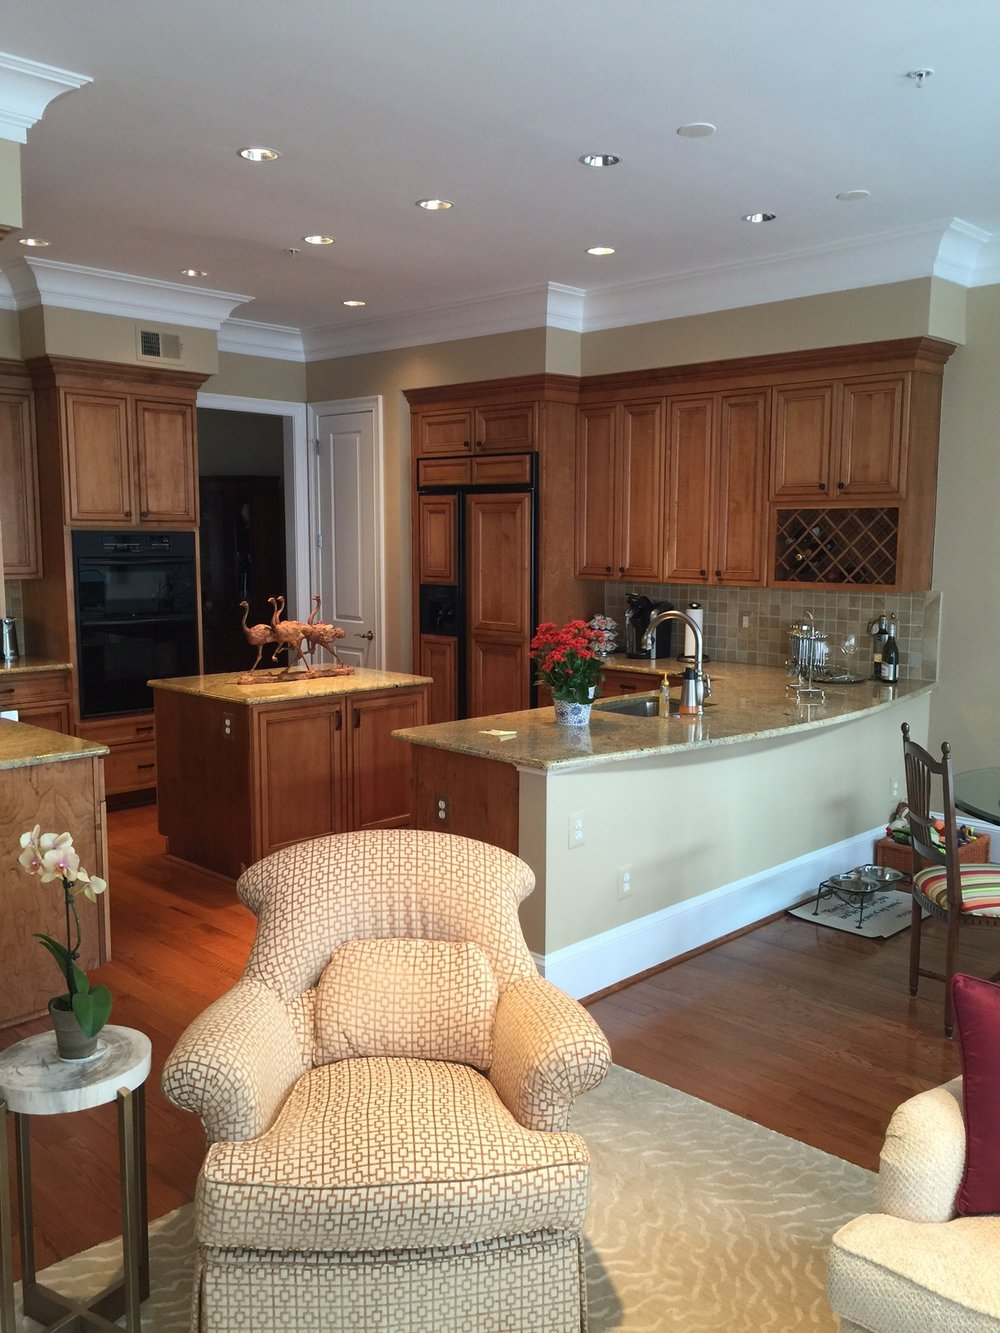 Oblon_Kitchen_CrownMolding_warmrichneutral.JPG